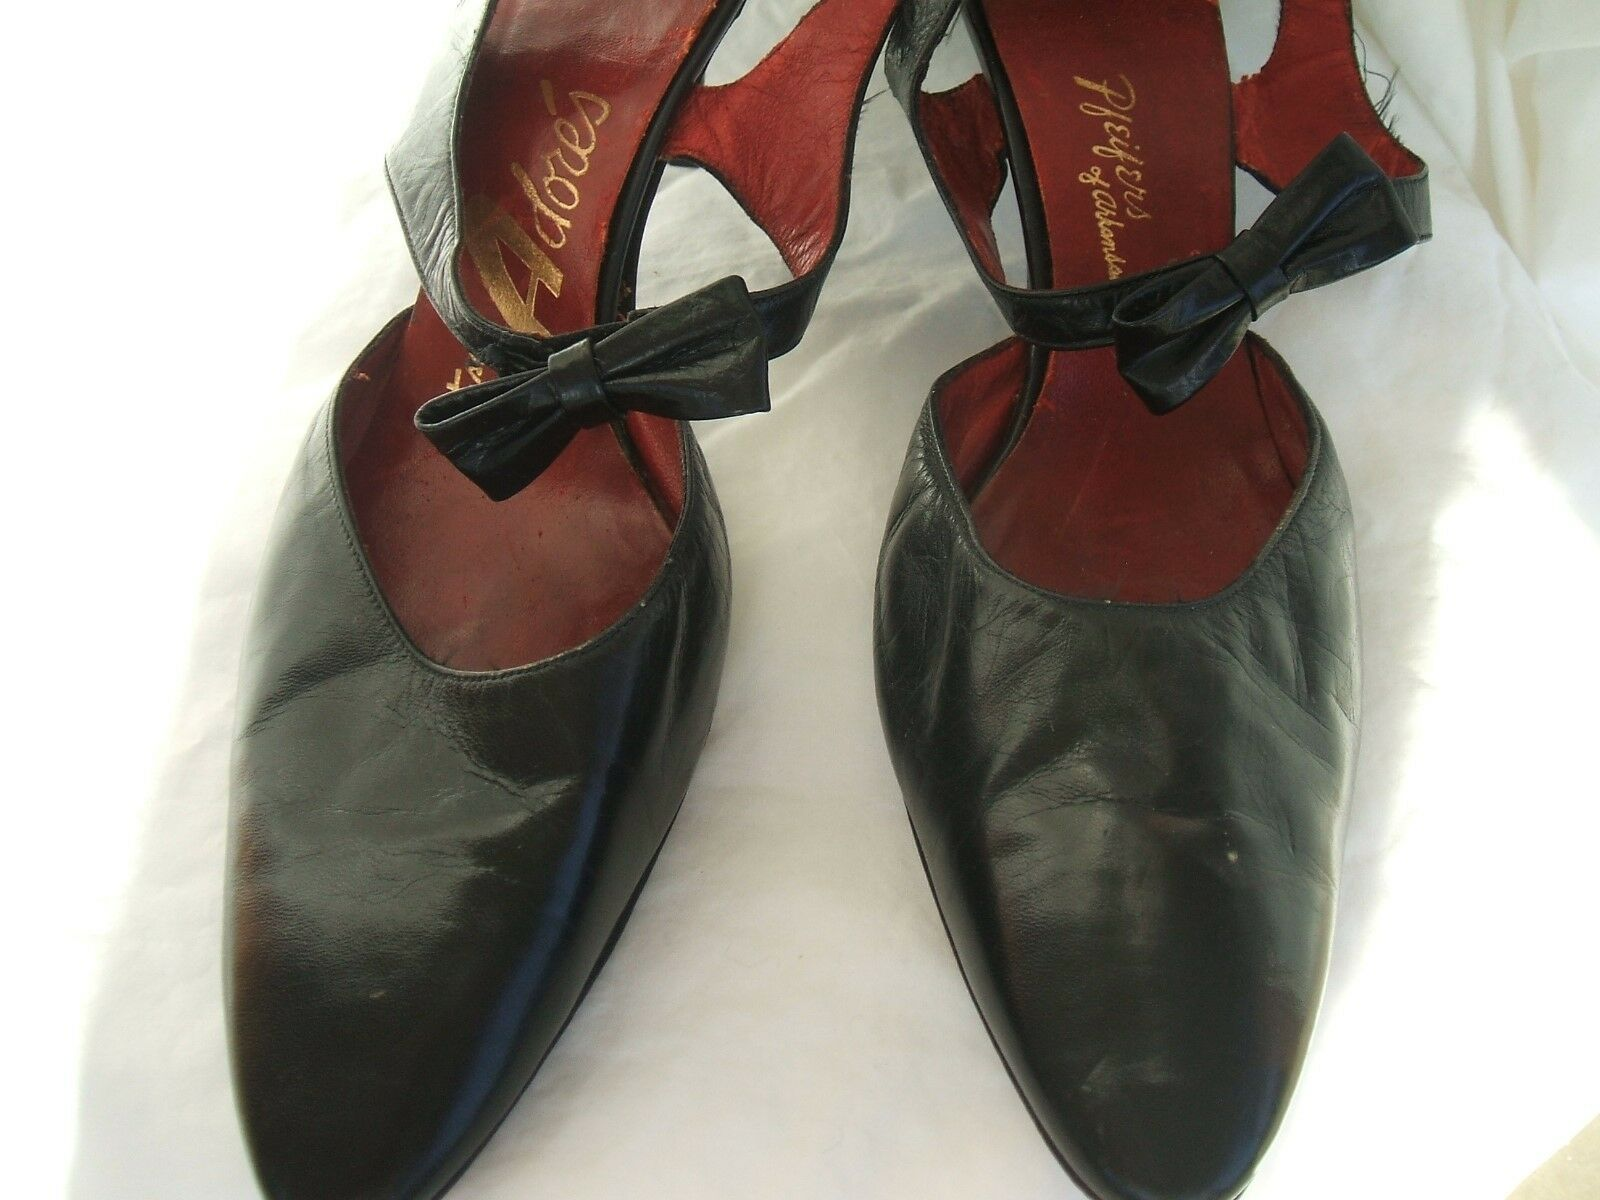 1950's Adore's Pointy Toe Kitten Heel Slingback Pump shoes  Size 9 Narrow